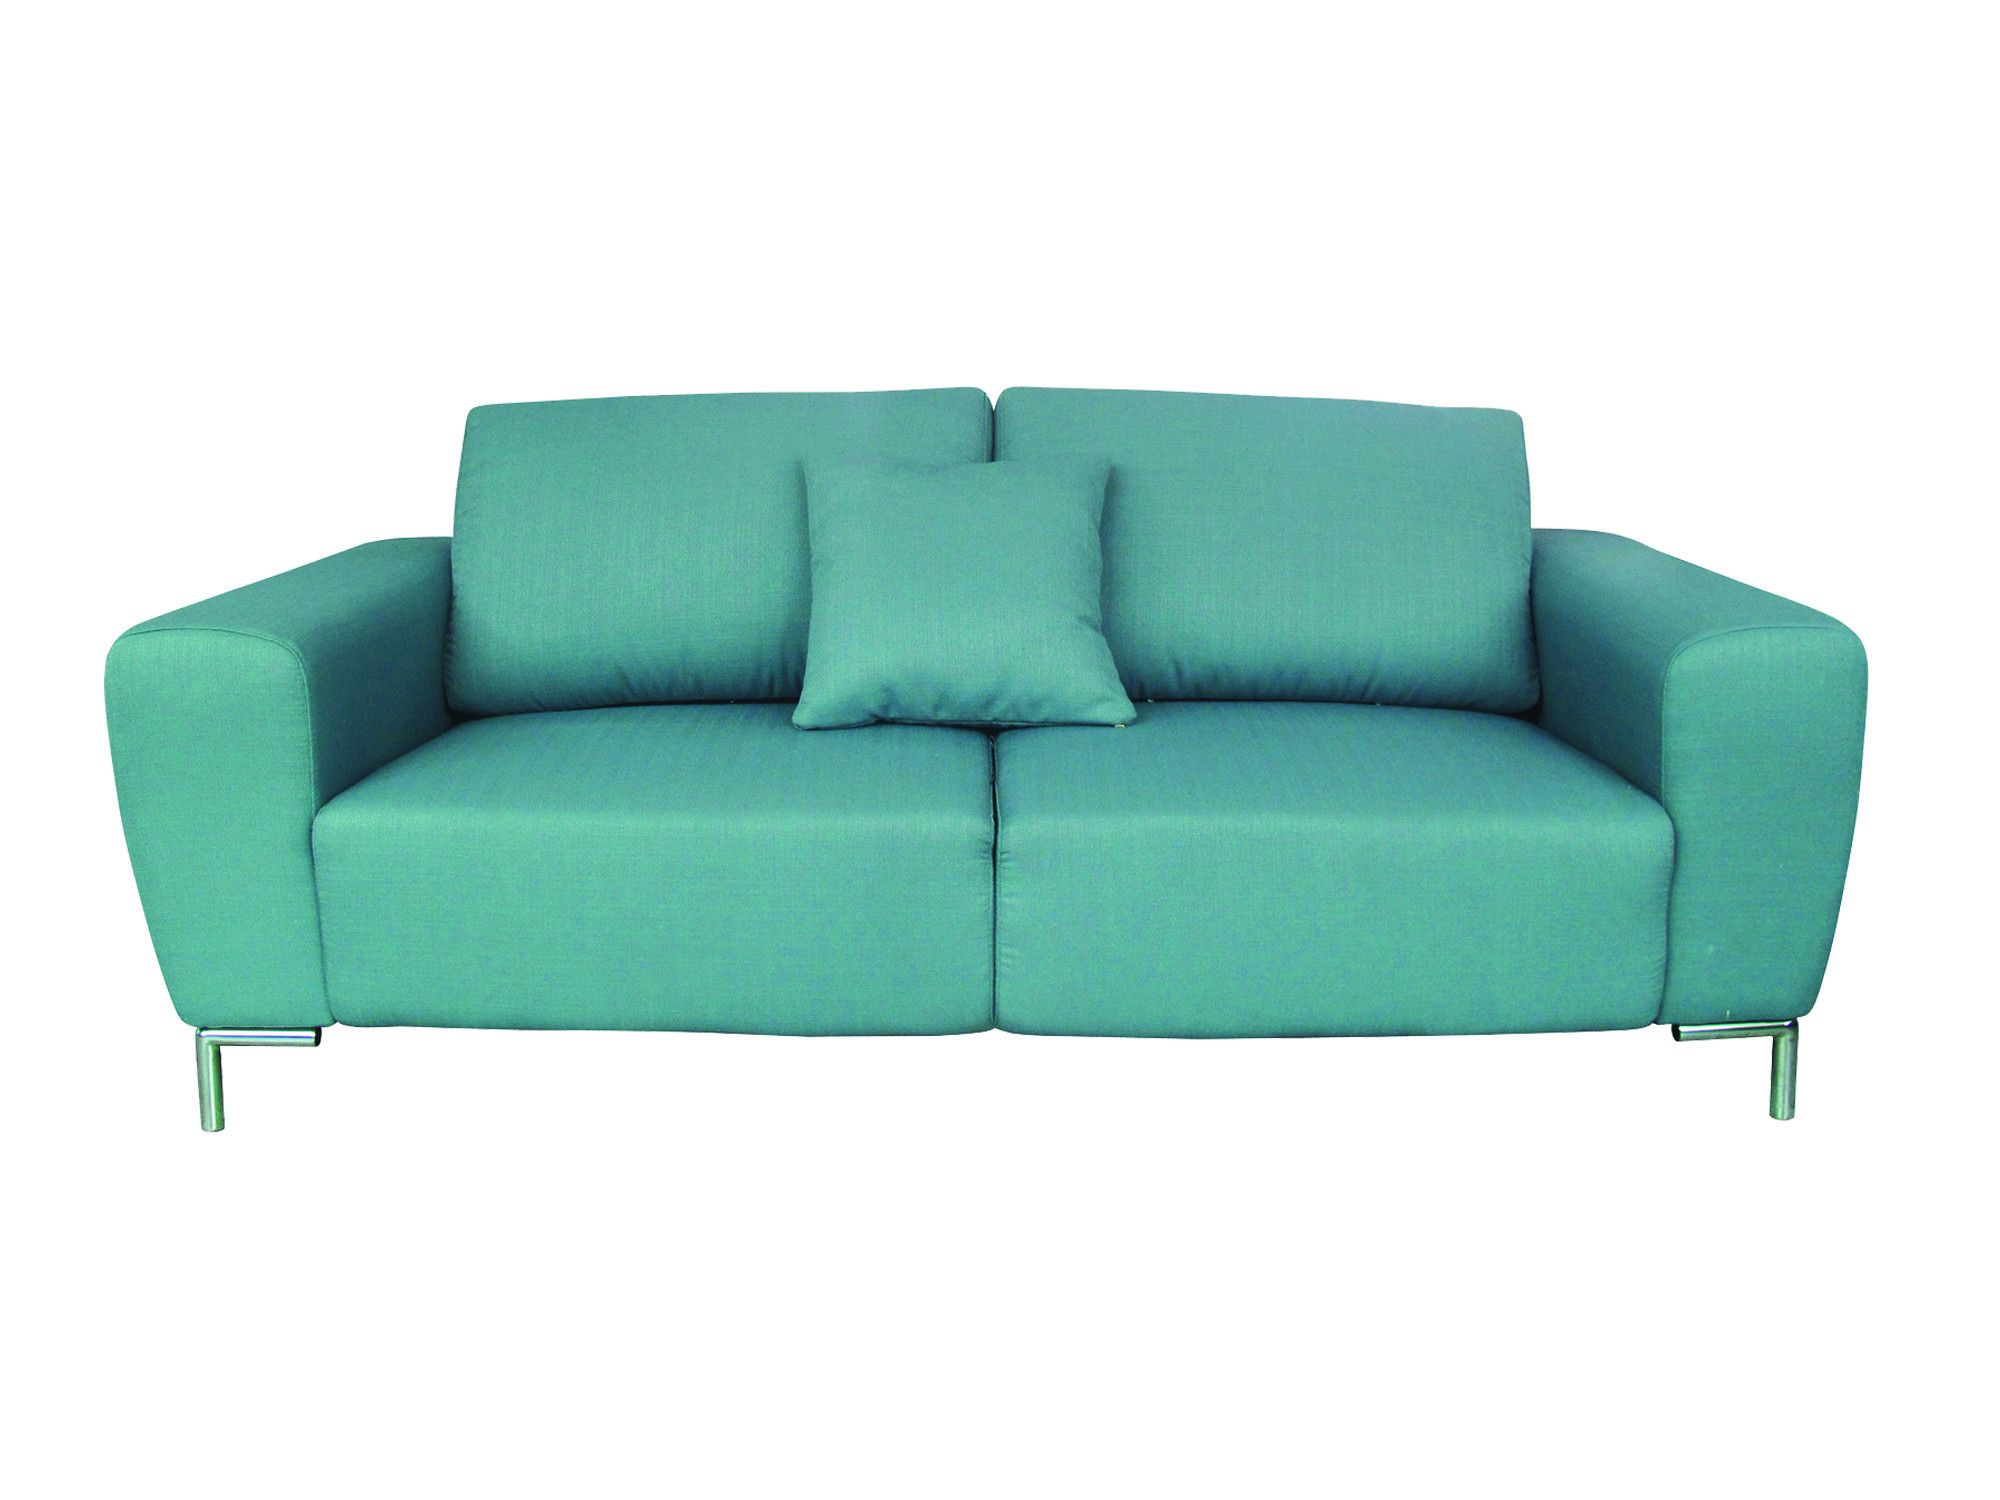 Light blue Montreal sofa for sale at Newell Furniture